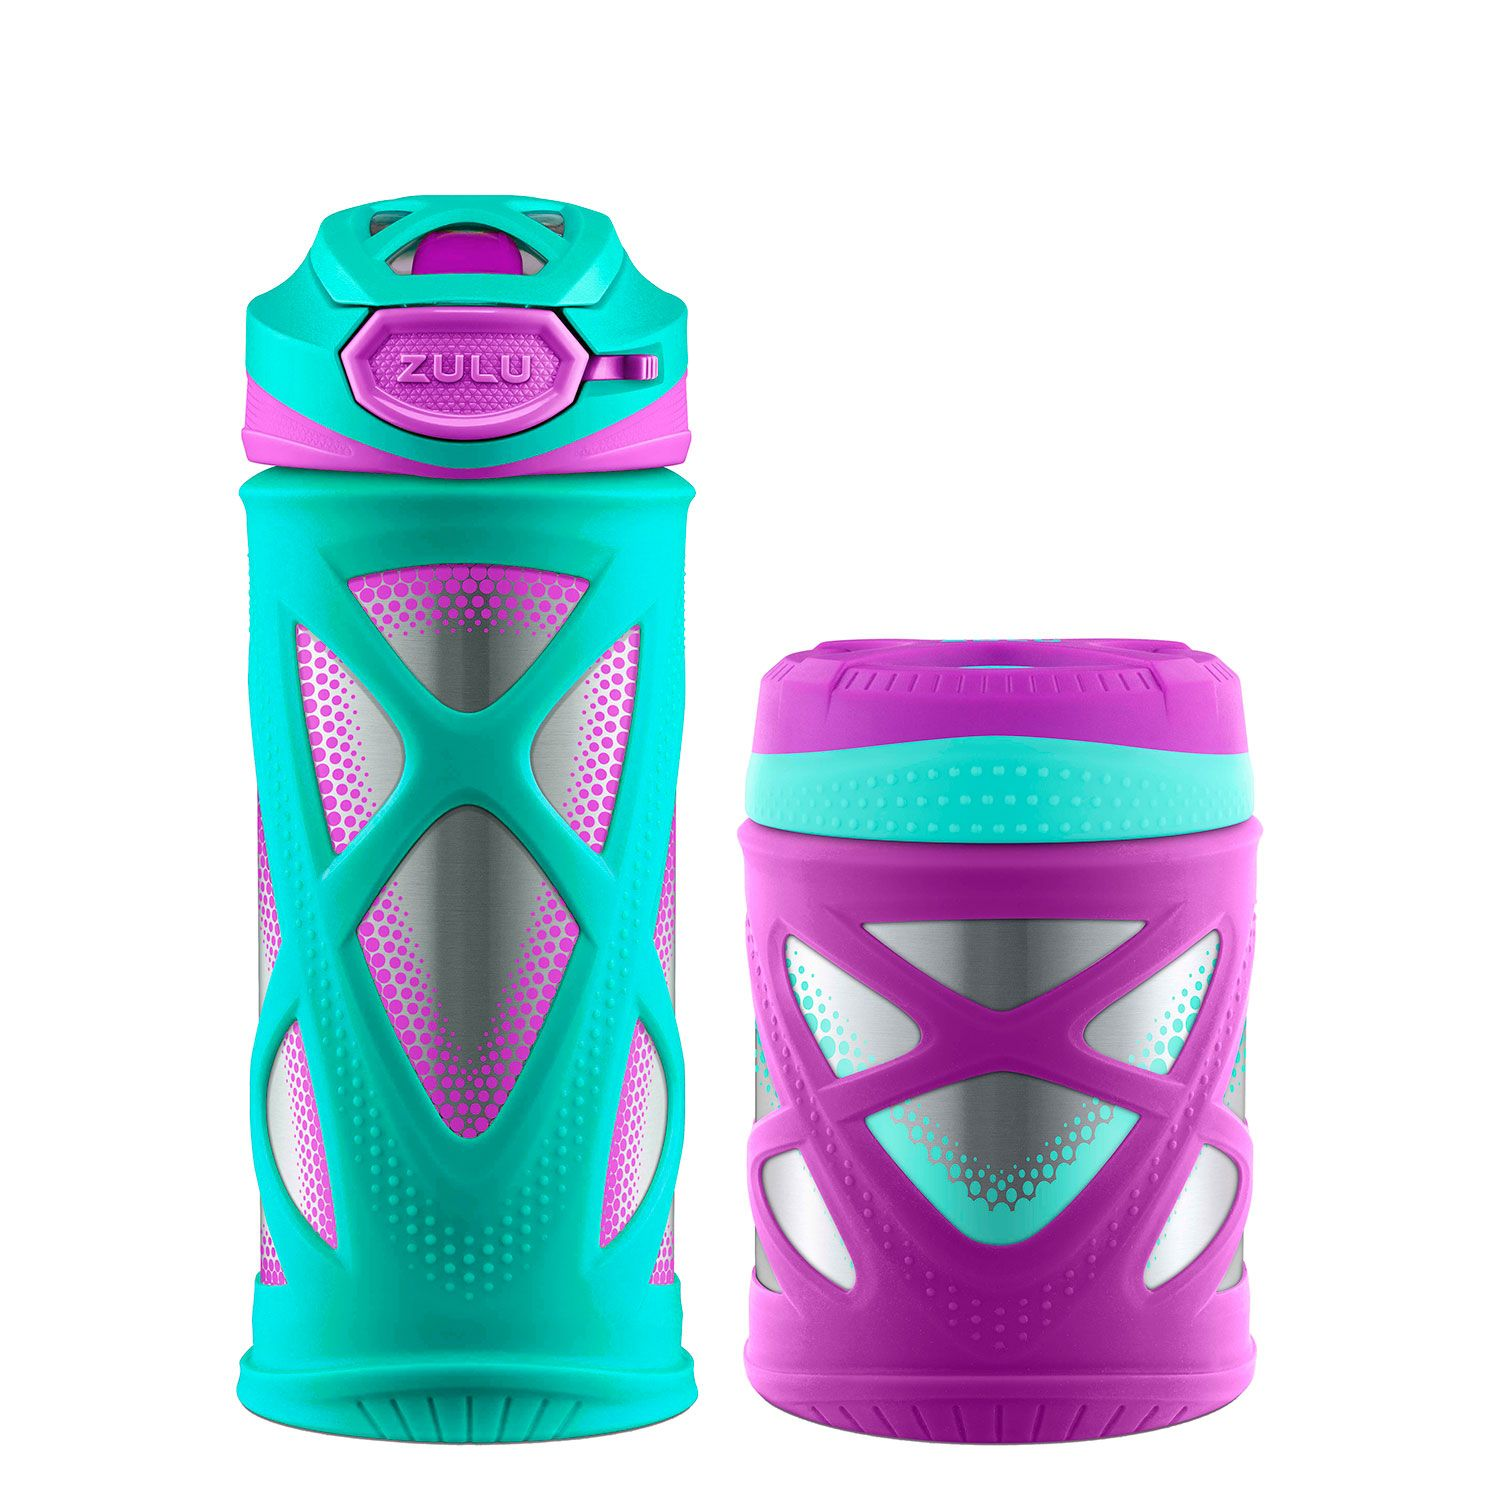 Zulu Kids Water Bottle and Canister Set - Teal